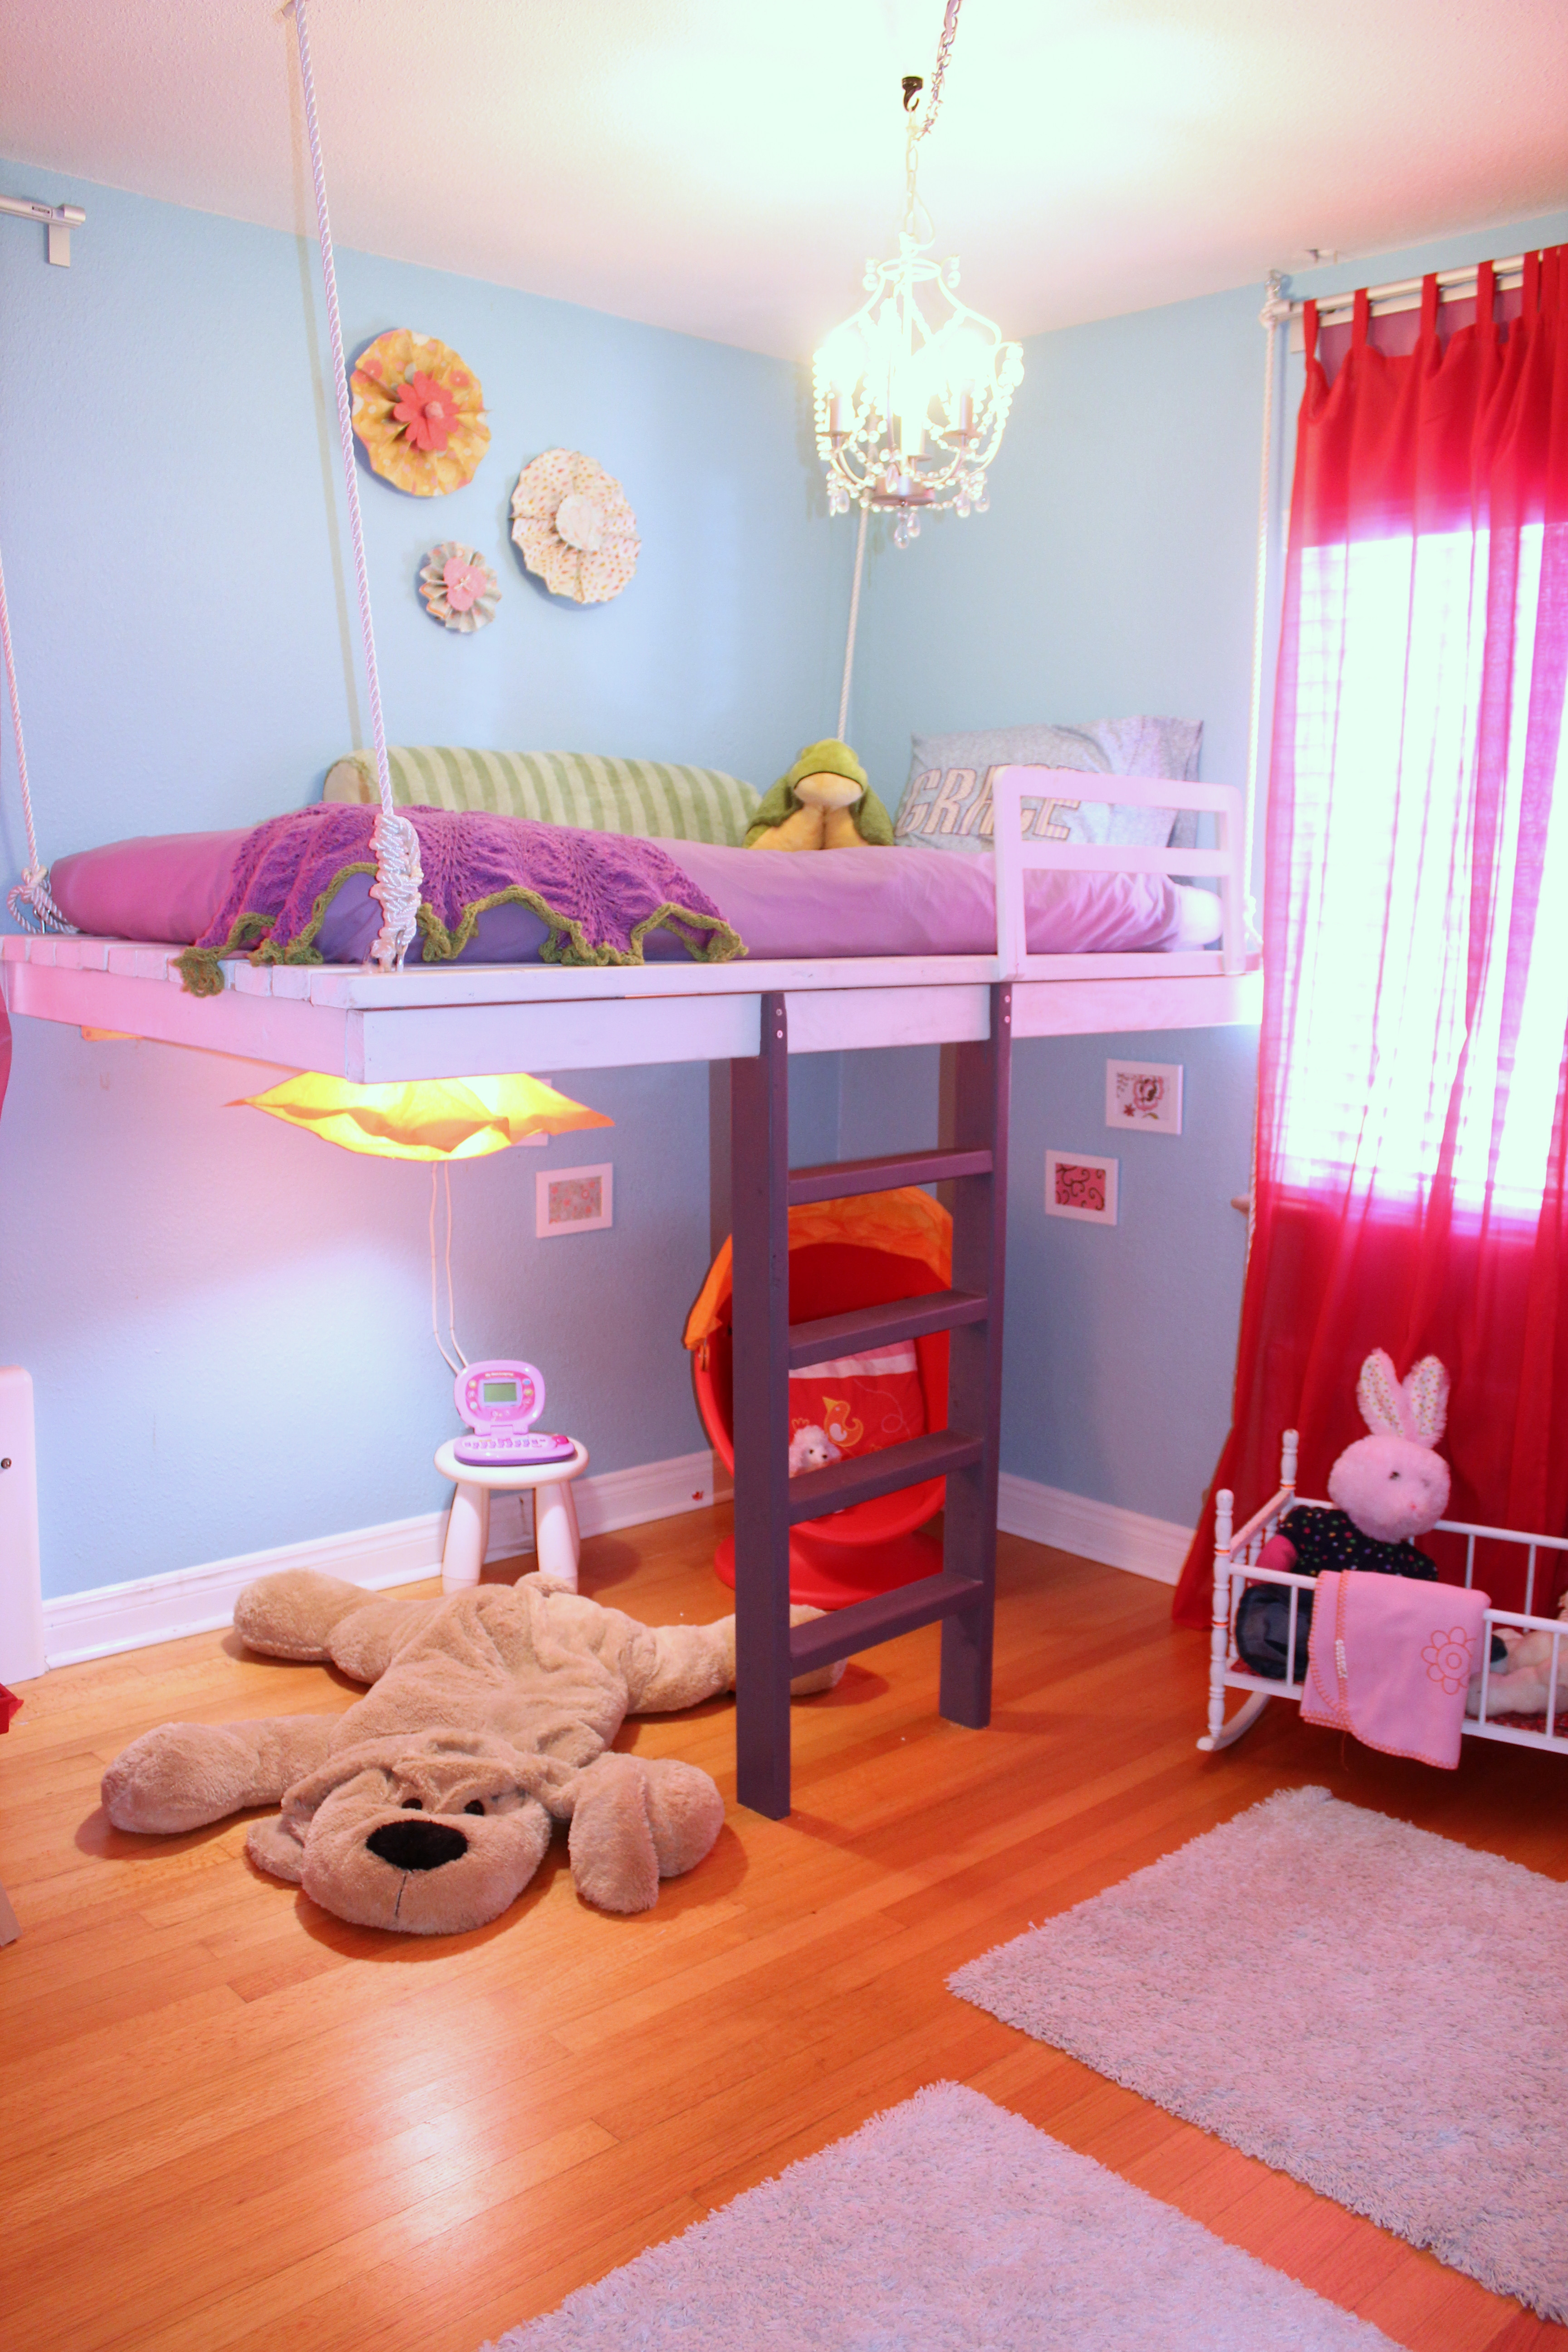 Best ideas about Lofted Bed DIY . Save or Pin Ana White Now.